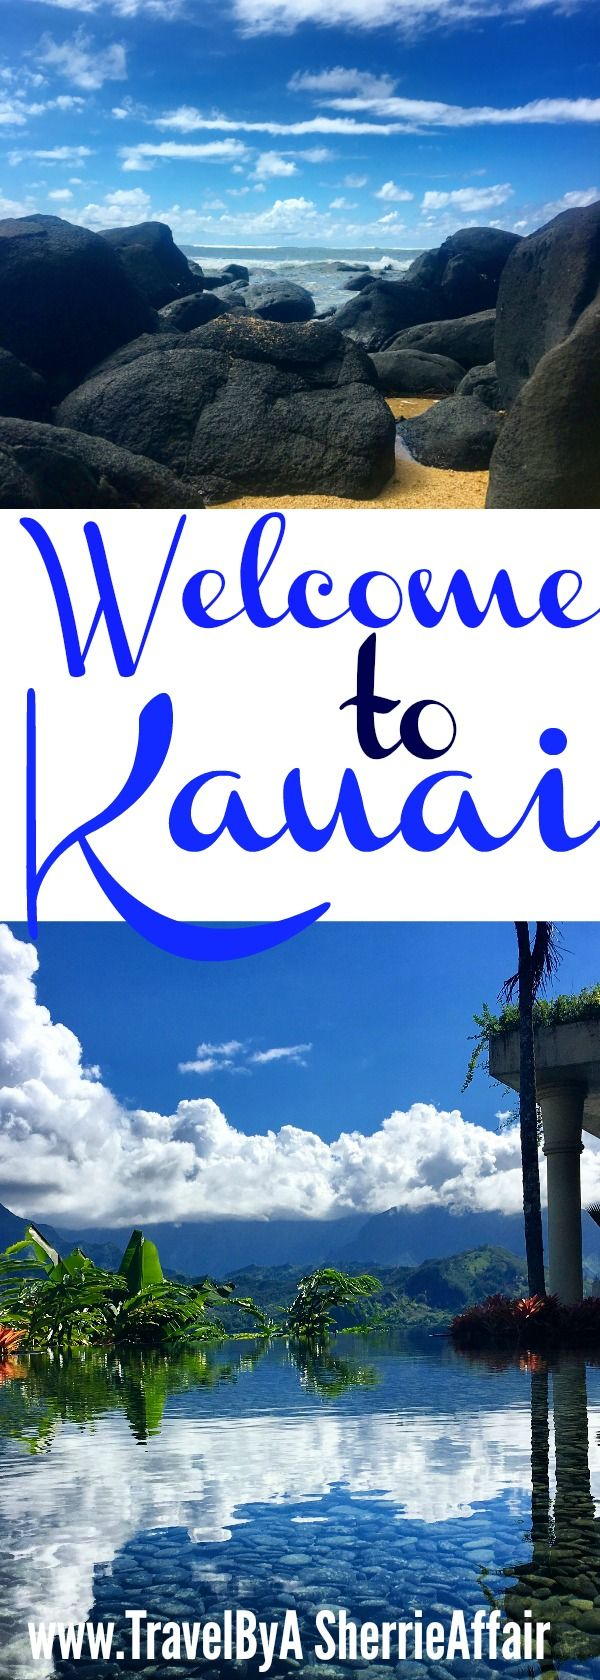 Kauai Hawaii!!! Yes it is beautiful, gorgeous, beaches are amazing, gardens, canyons, small towns, great food, tours, boating, snorkeling, surfing!